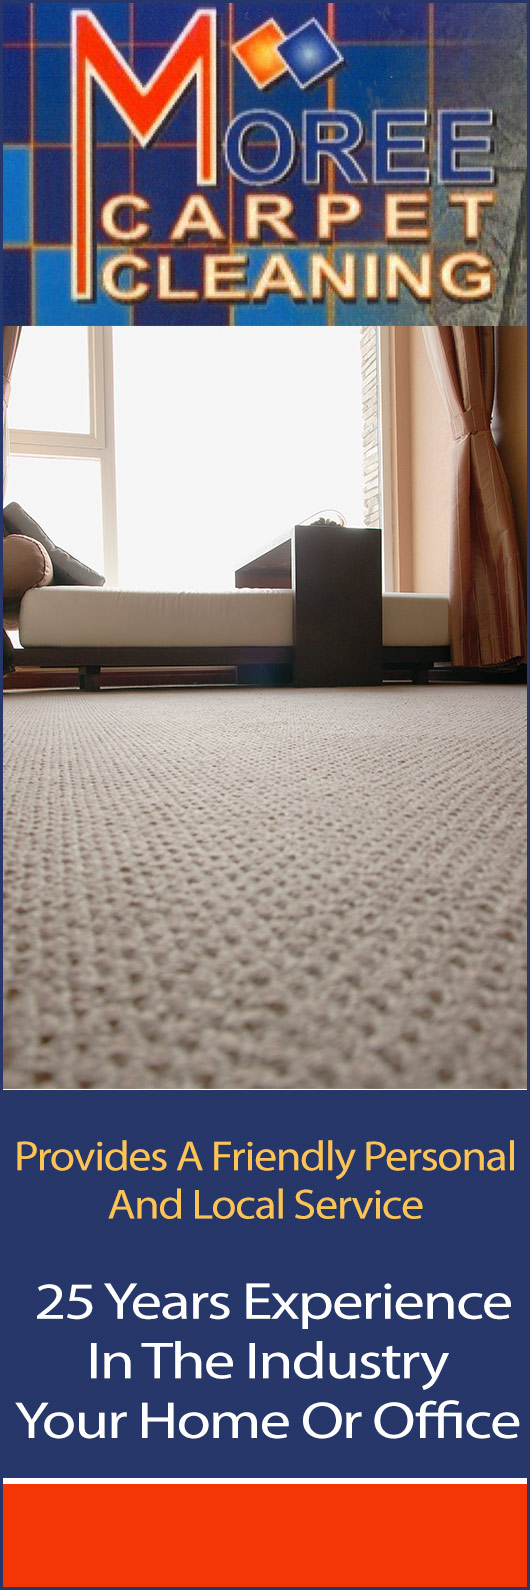 Moree carpet cleaning promotion